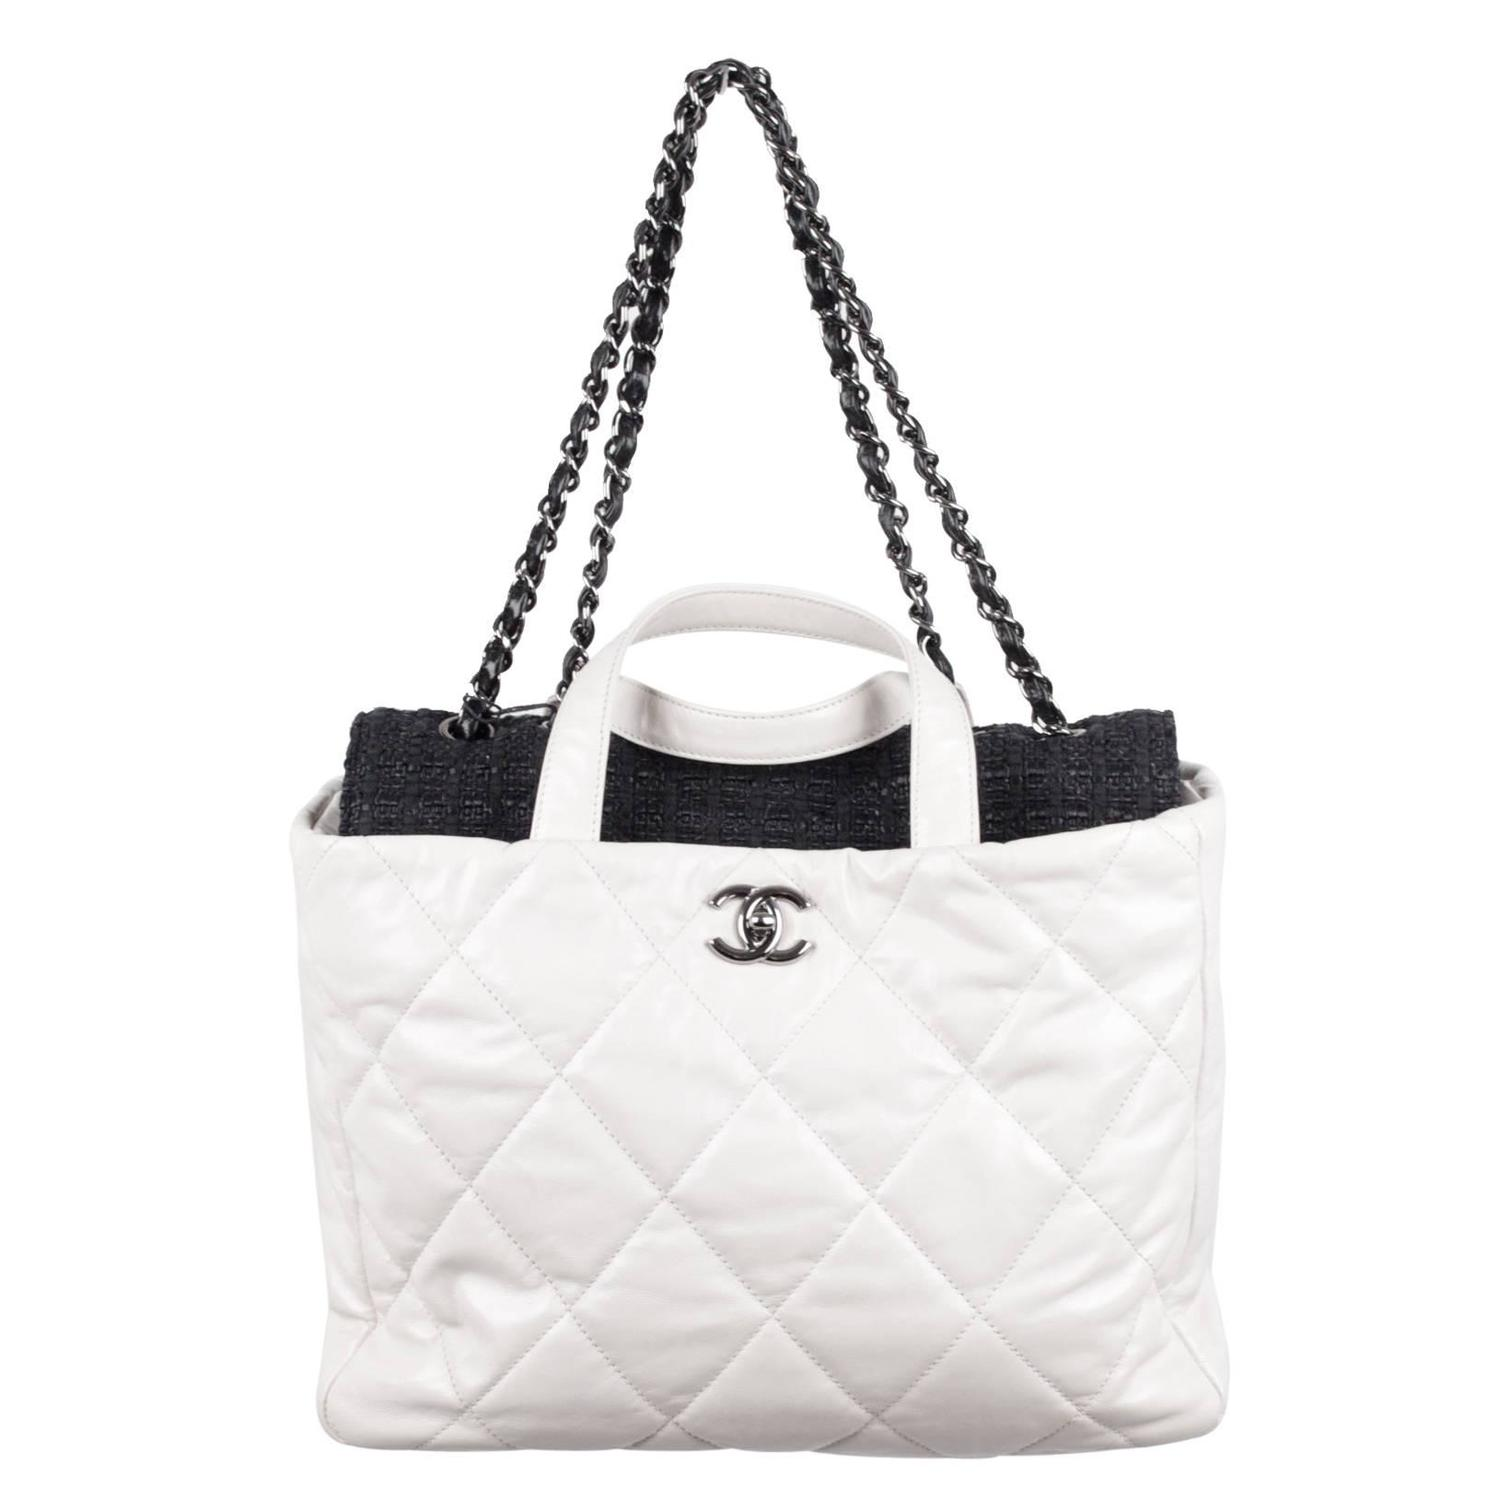 z quilt bags handbags beige flap purses id v org chanel mini at shoulder bag leather structured fashion classic quilted